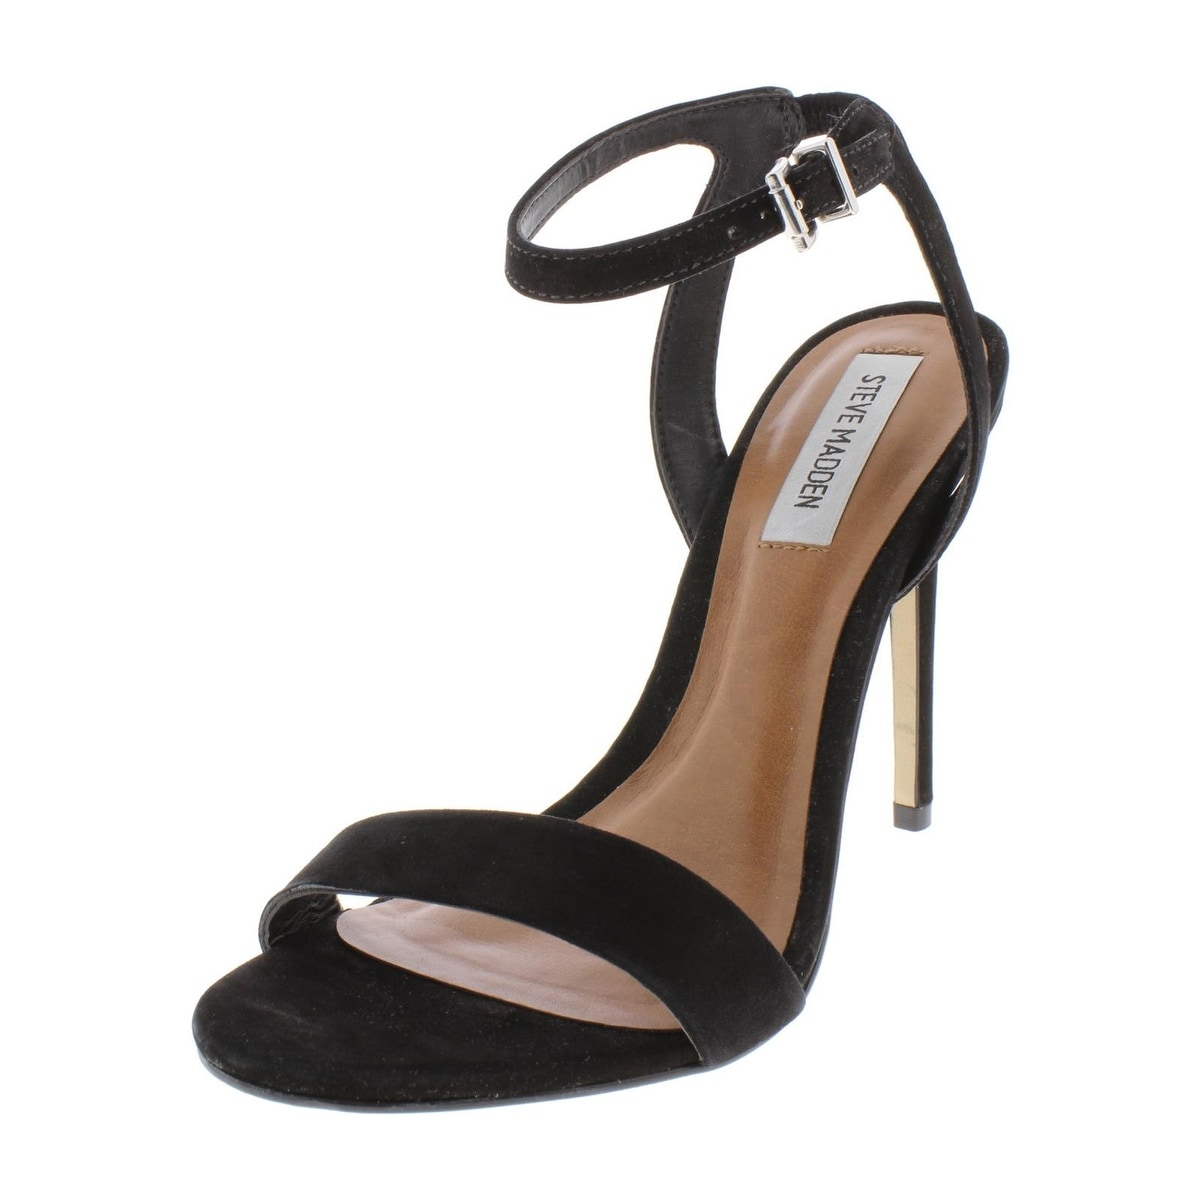 a2039a258a5 Buy Pink Steve Madden Women's Sandals Online at Overstock | Our Best ...